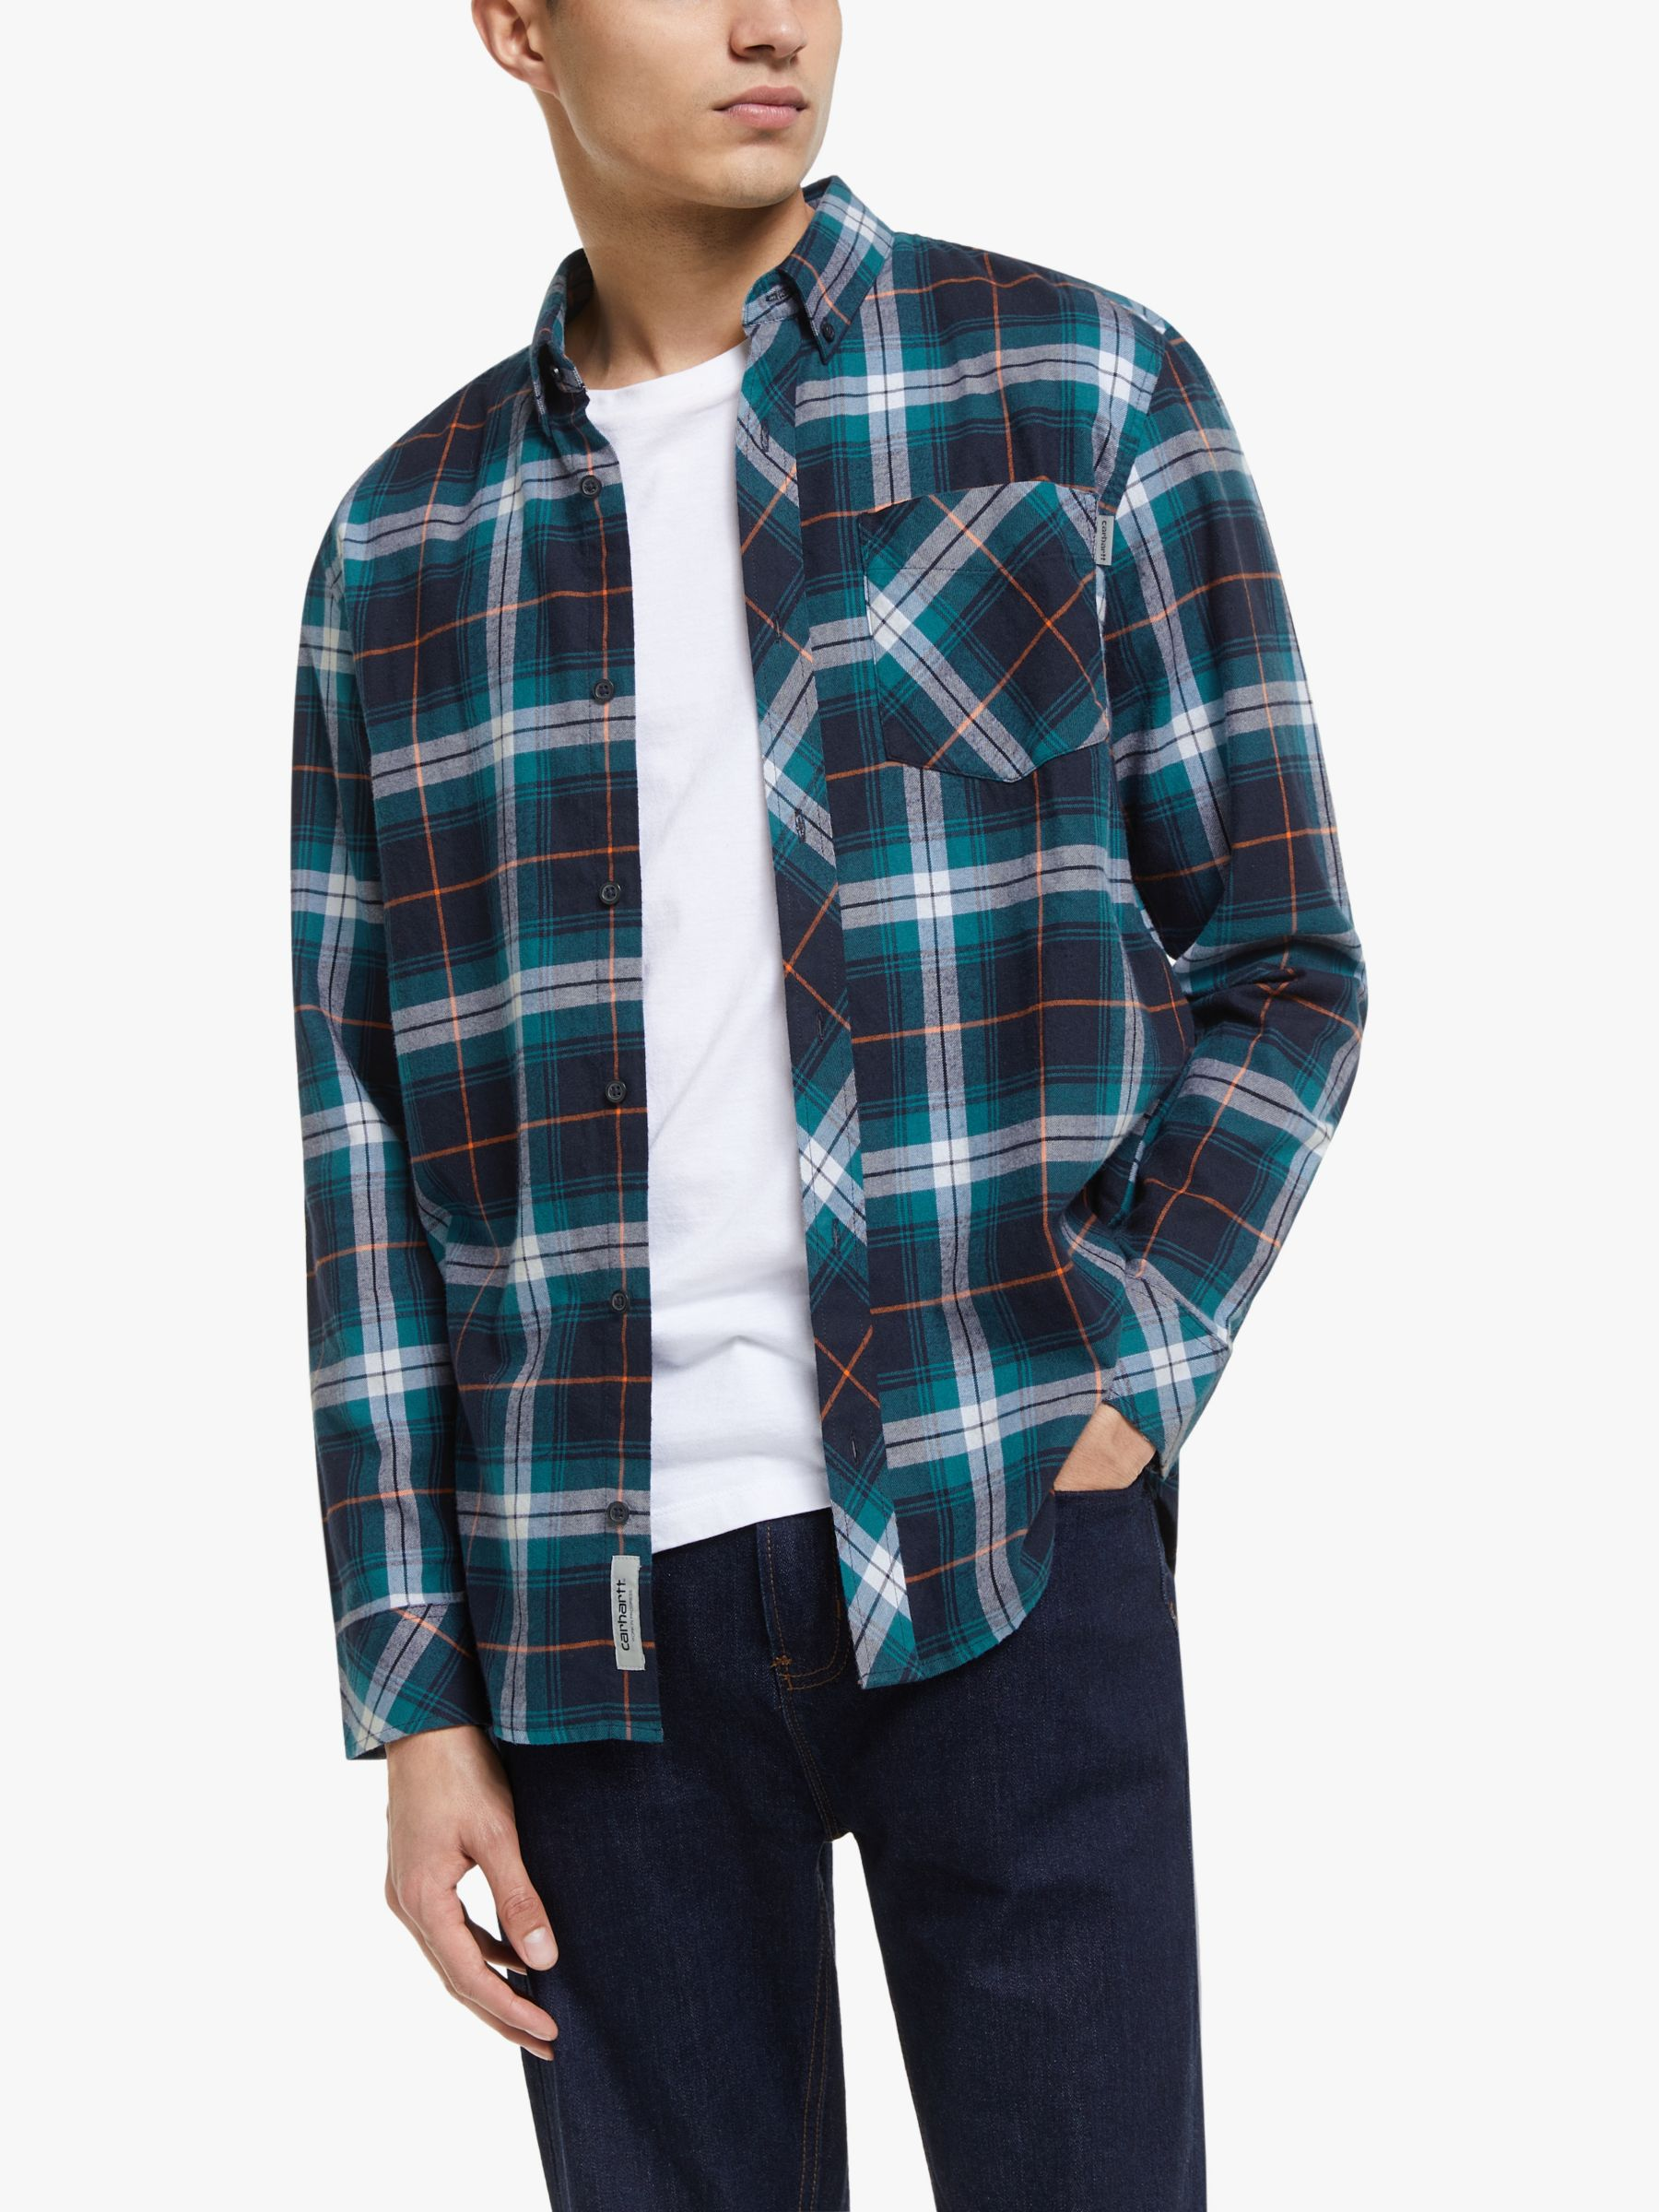 Carhartt WIP Carhartt WIP Phil Check Shirt, Blue